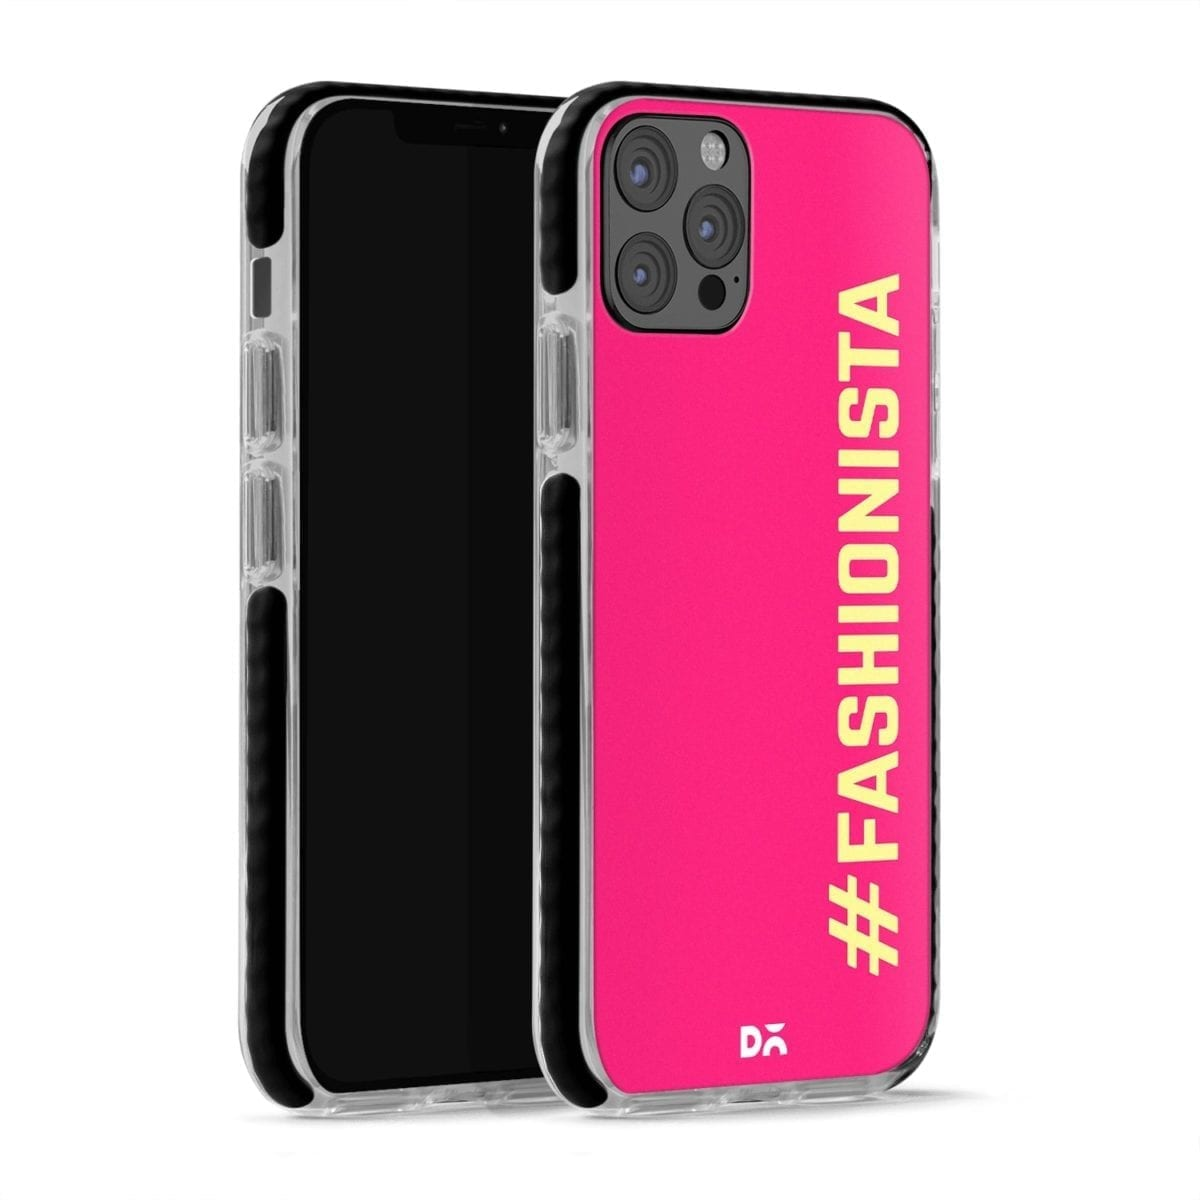 Fashionista Case Cover for Apple iPhone 12 Pro and Apple iPhone 12 Pro Max with great design and shock proof | Klippik | Online Shopping | Kuwait UAE Saudi